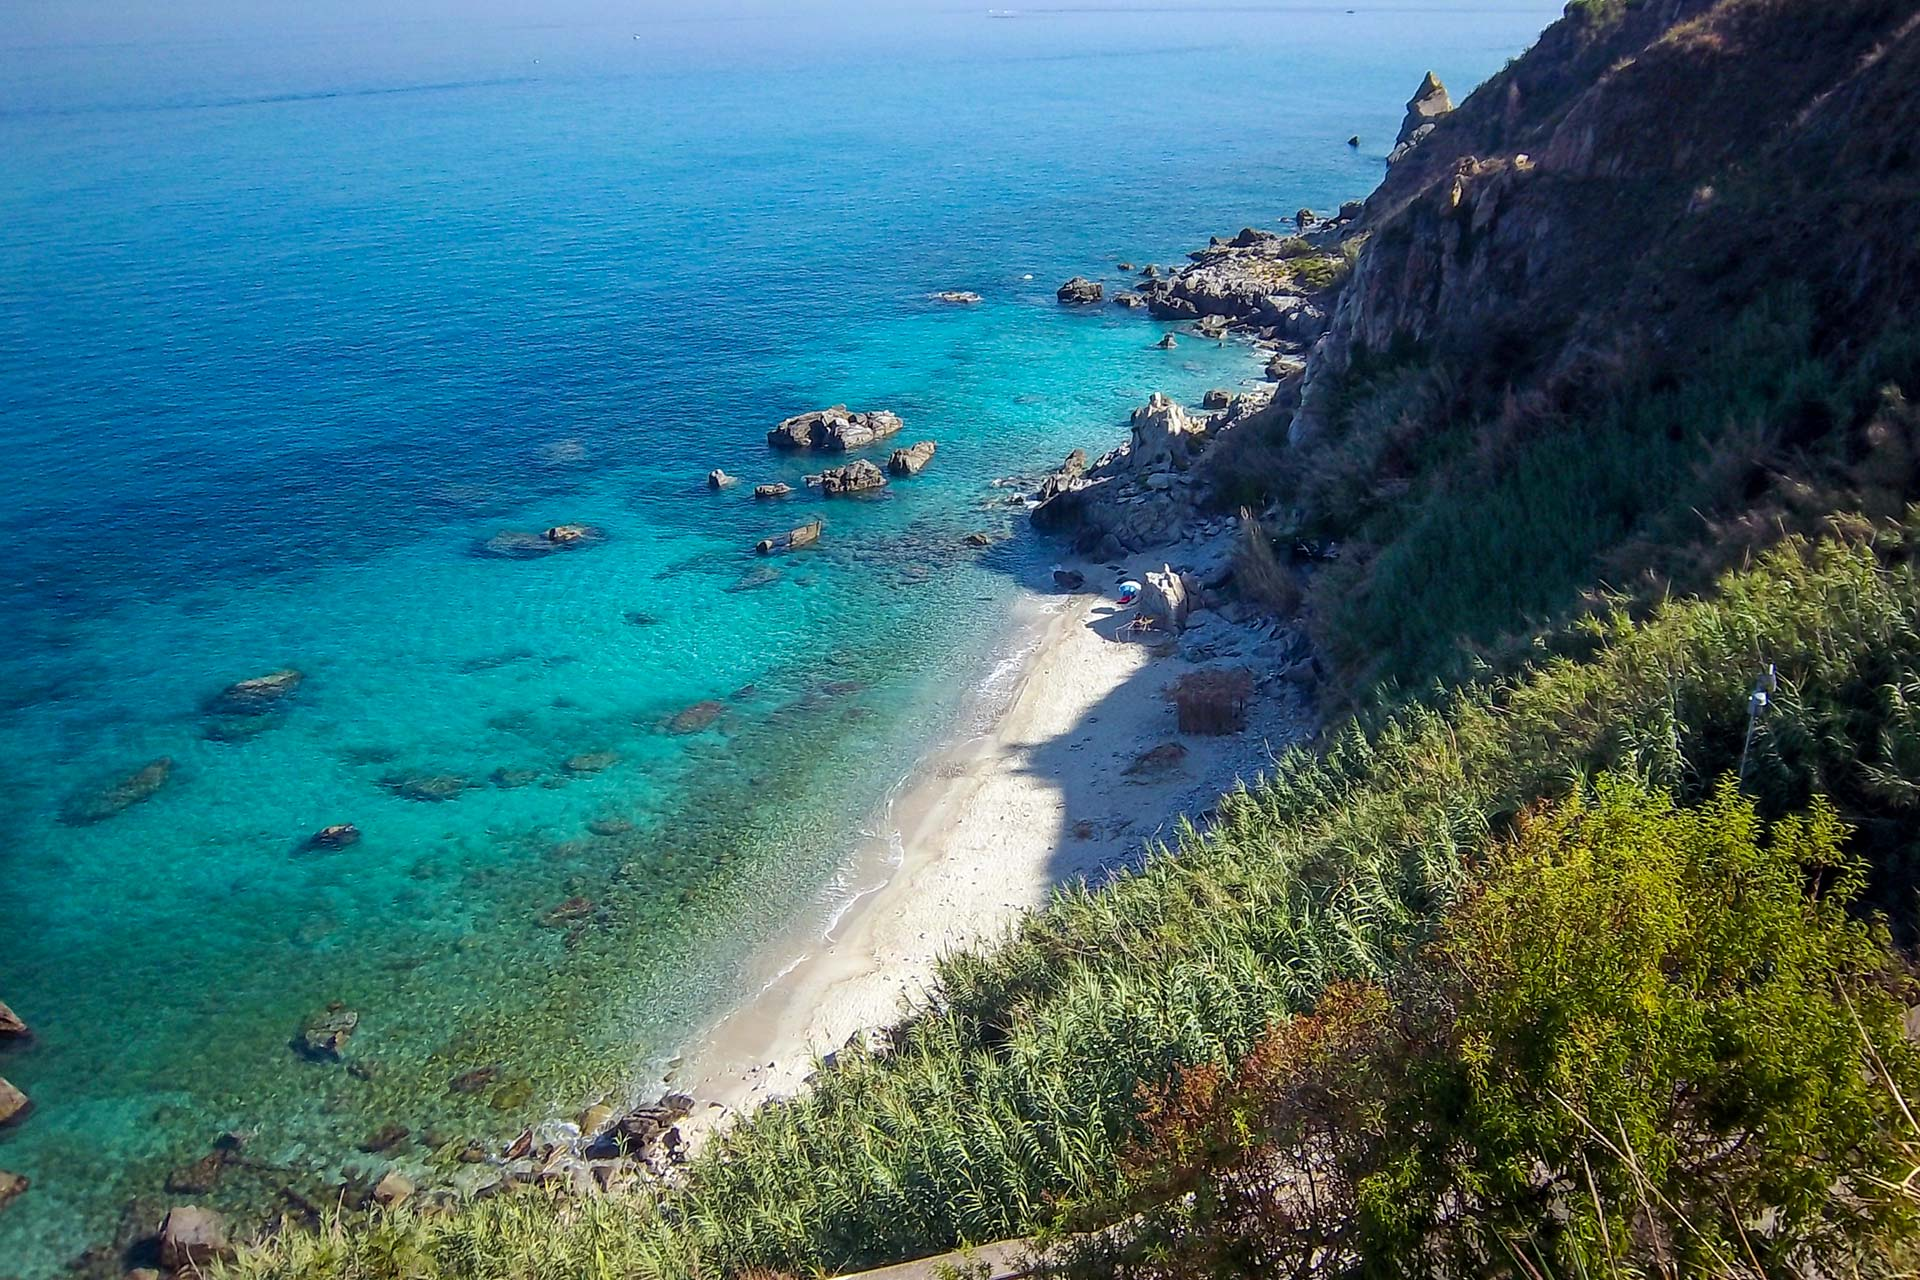 The beach of Michelino